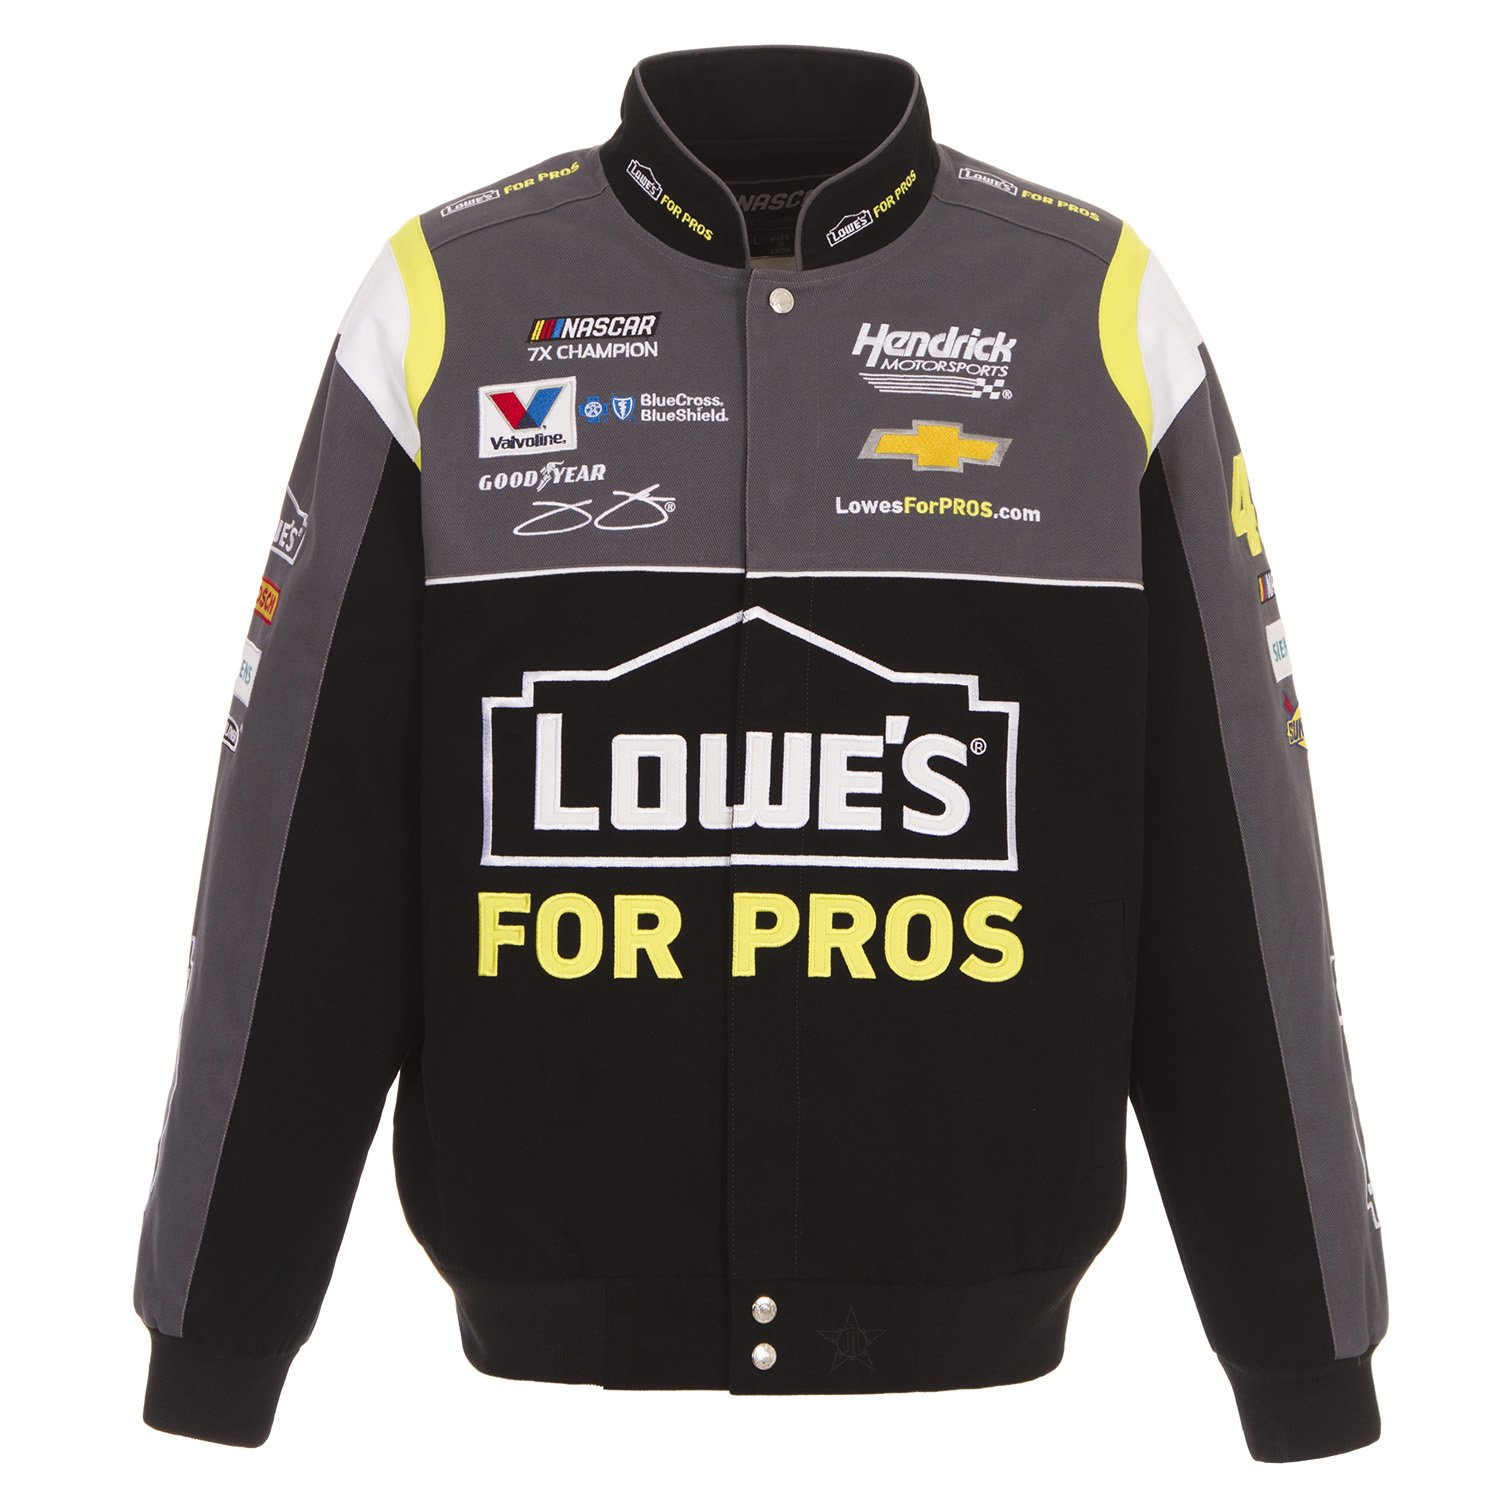 2018 Jimmie Johnson Lowe's NASCAR Jacket Size Large